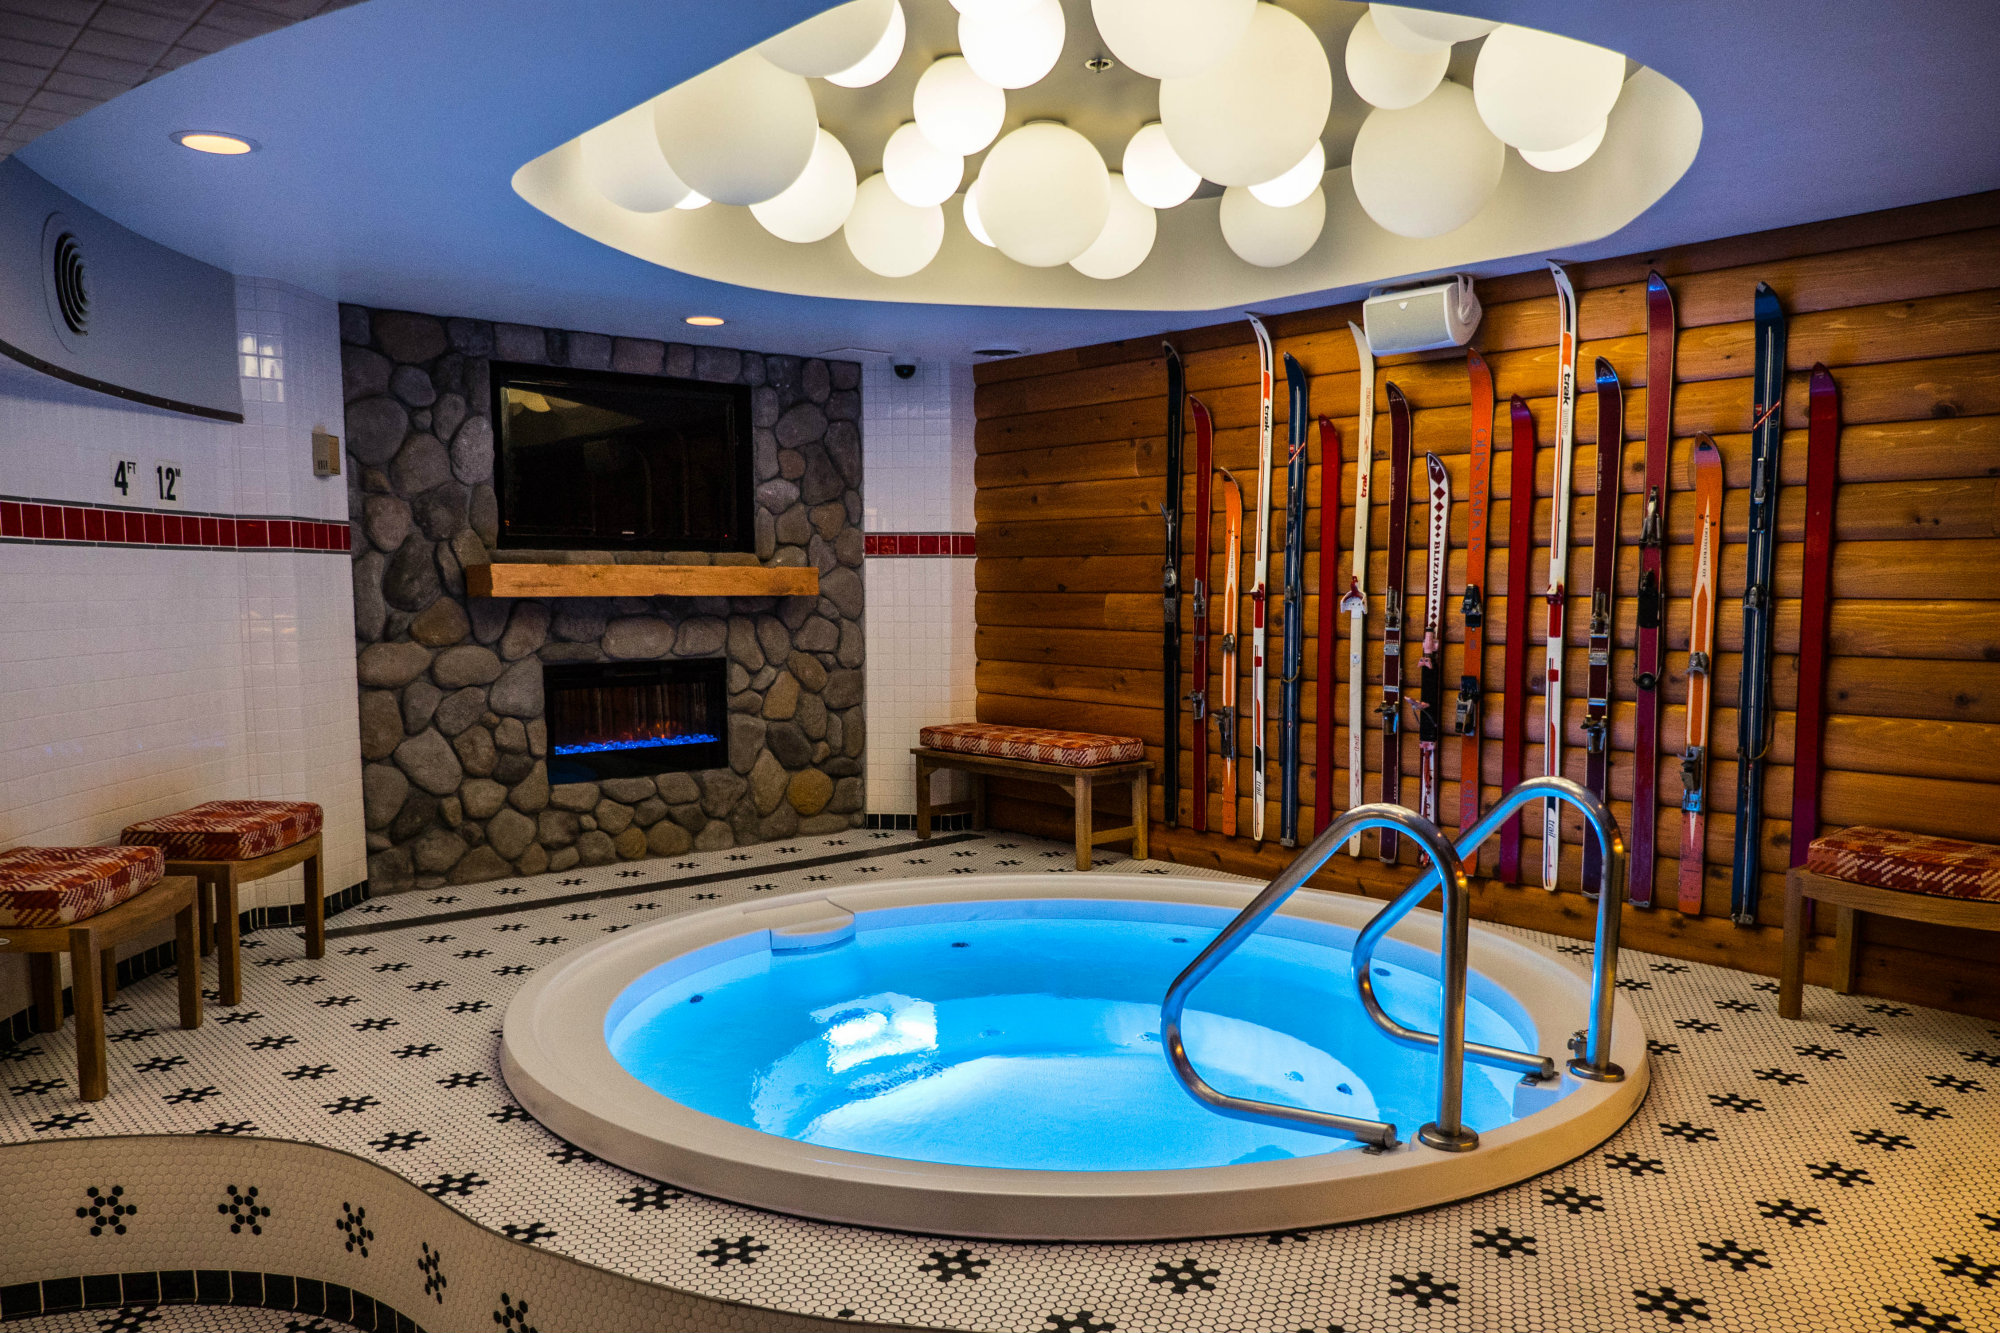 A Chicago Hotel Opens Hot Tub Themed Bar Pool Amp Spa News